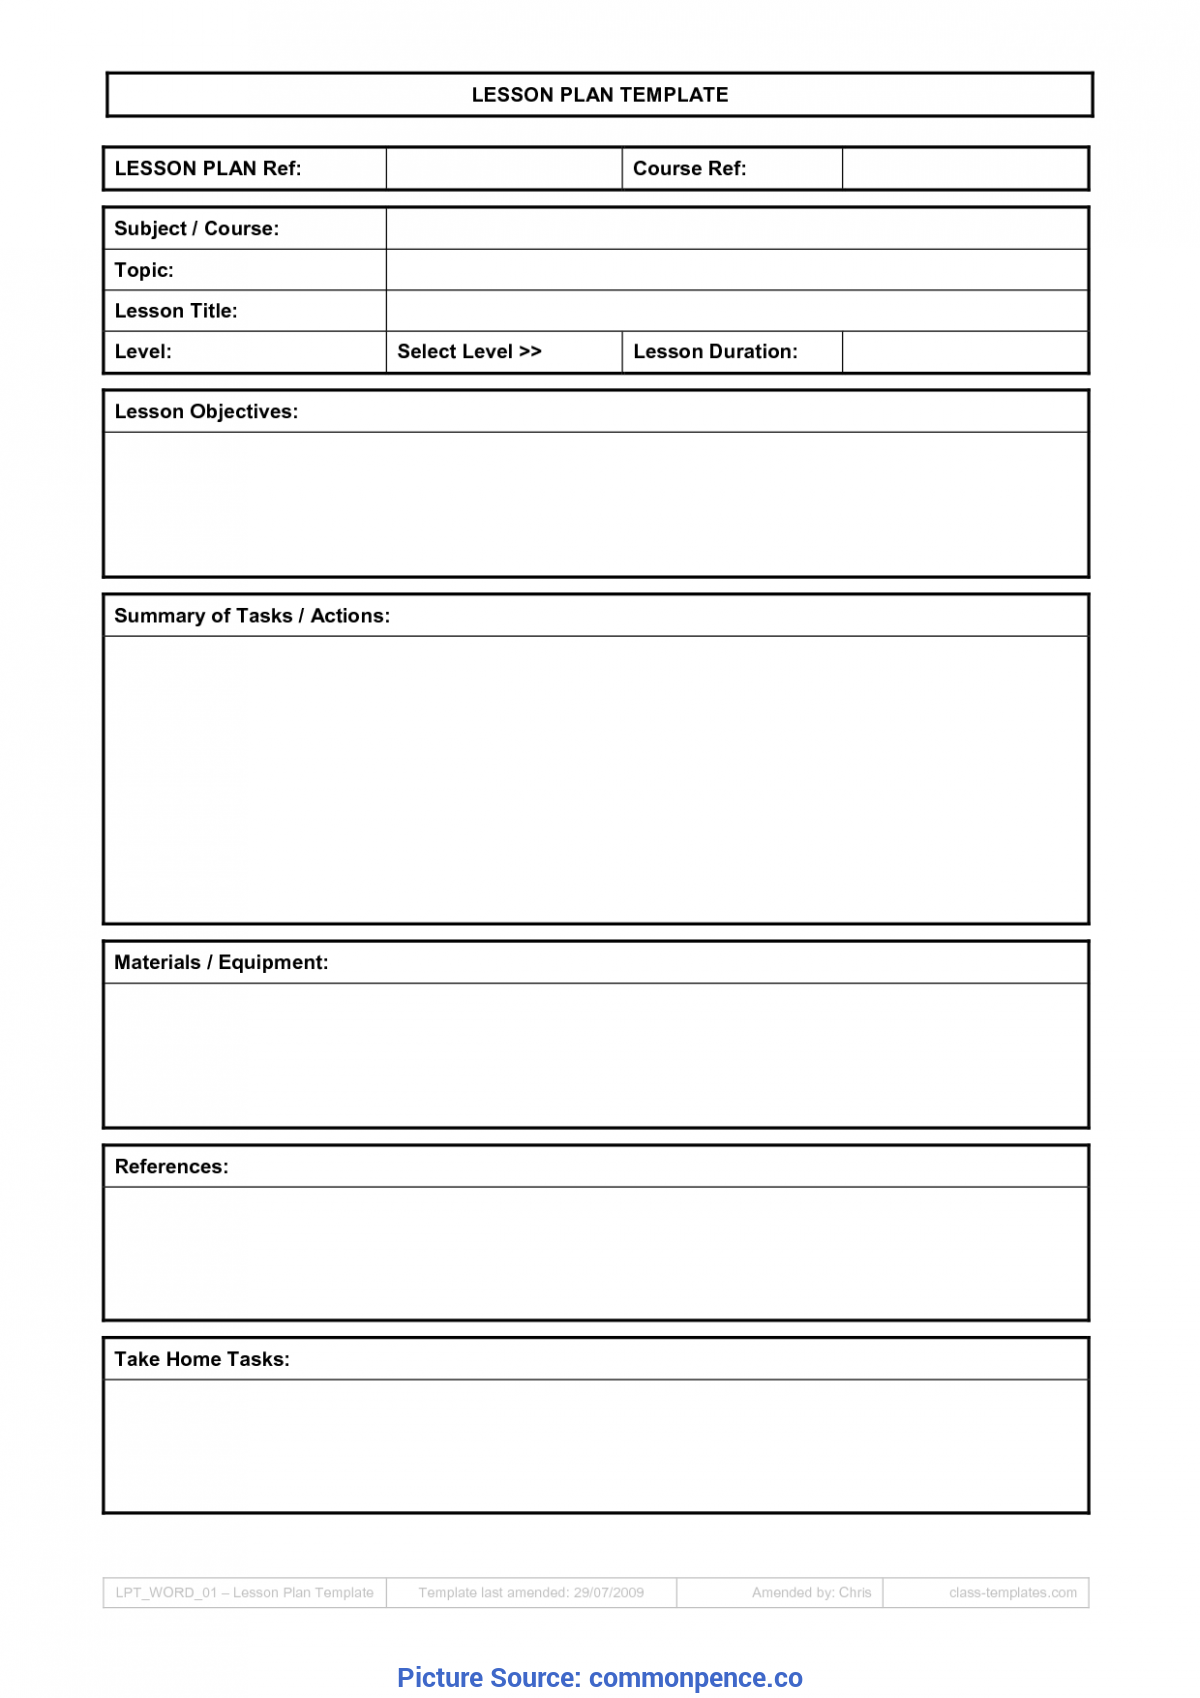 useful lesson plan template microsoft word 2007 cool how